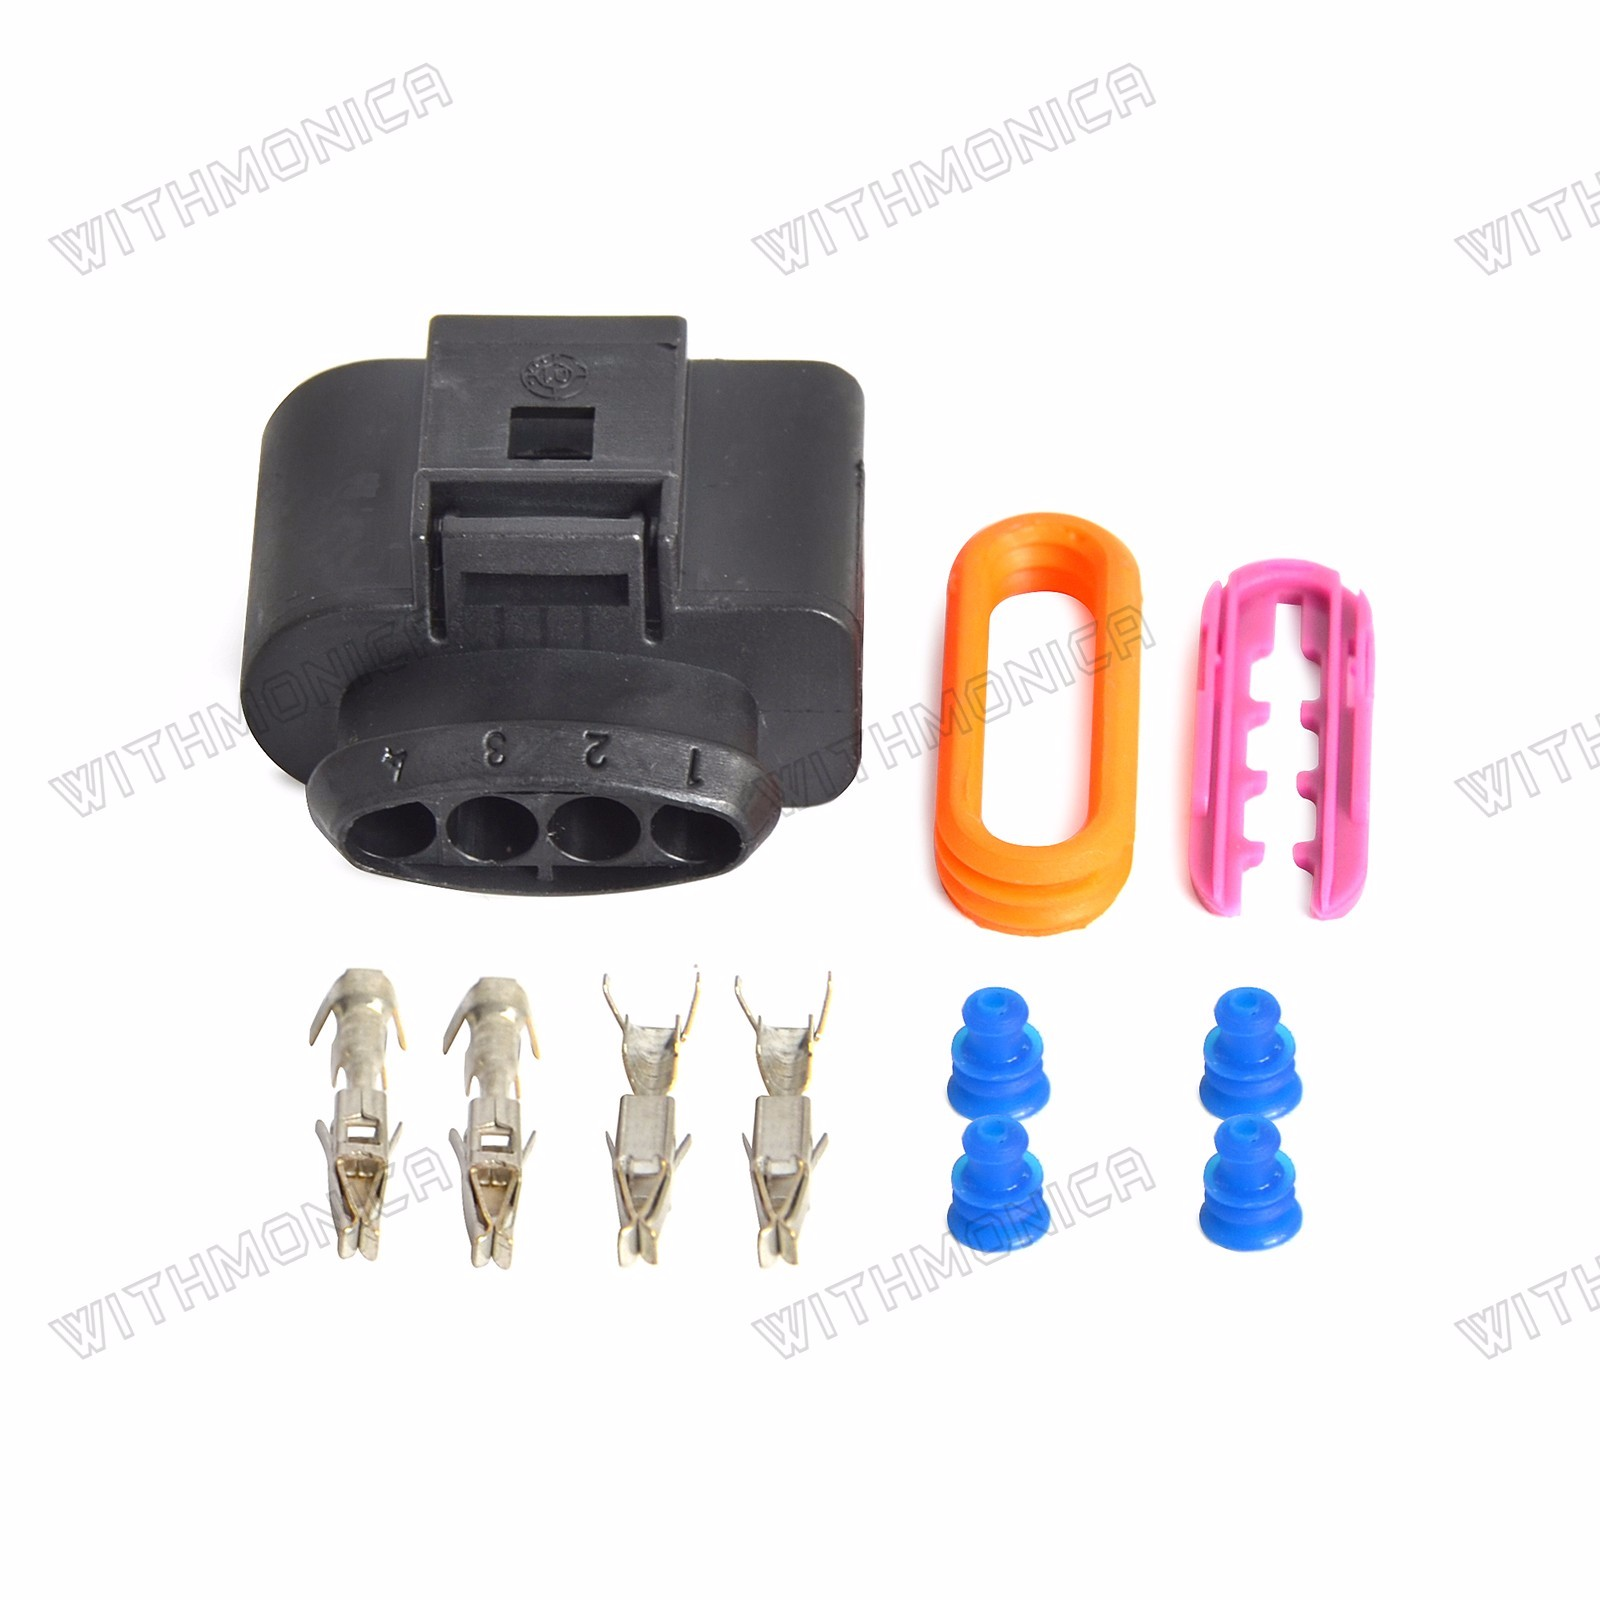 ignition coil wiring harness connector repair kit for audi a4 a6 vw rh ebay com Ford Wiring Harness Connectors Wiring Harness Terminals and Connectors